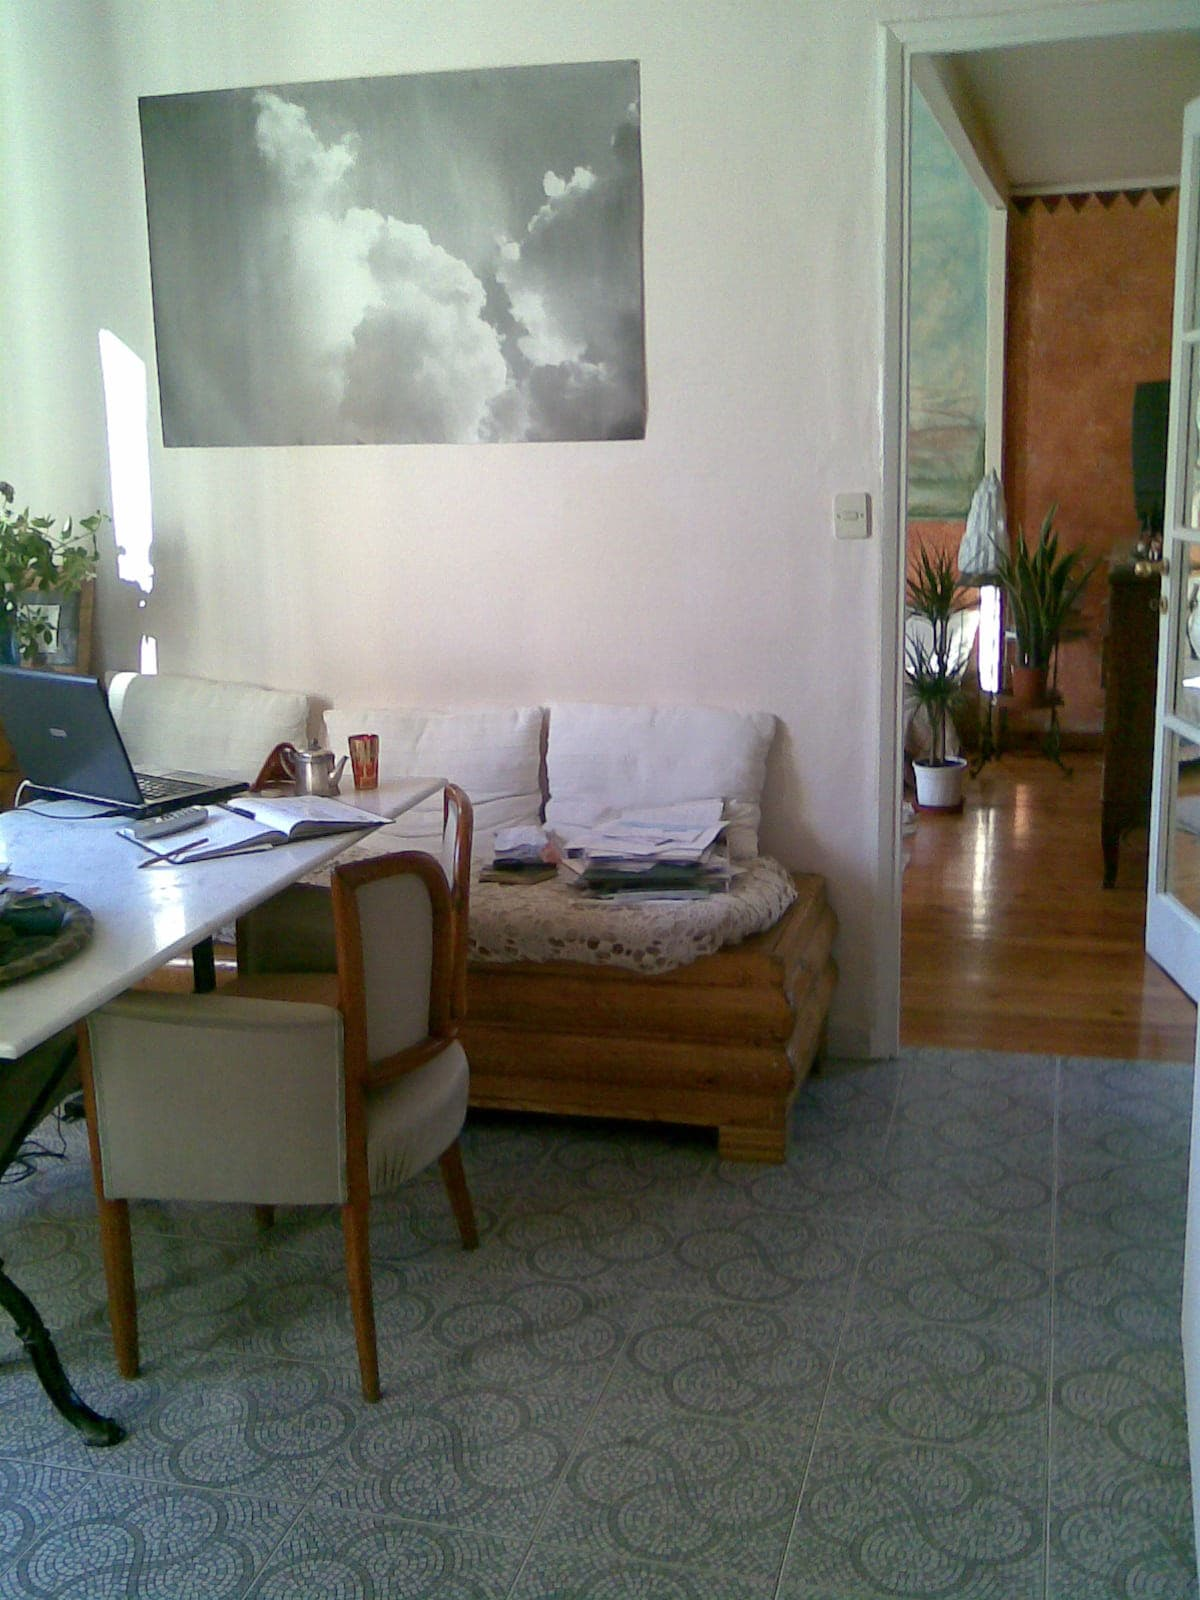 A view of the flat